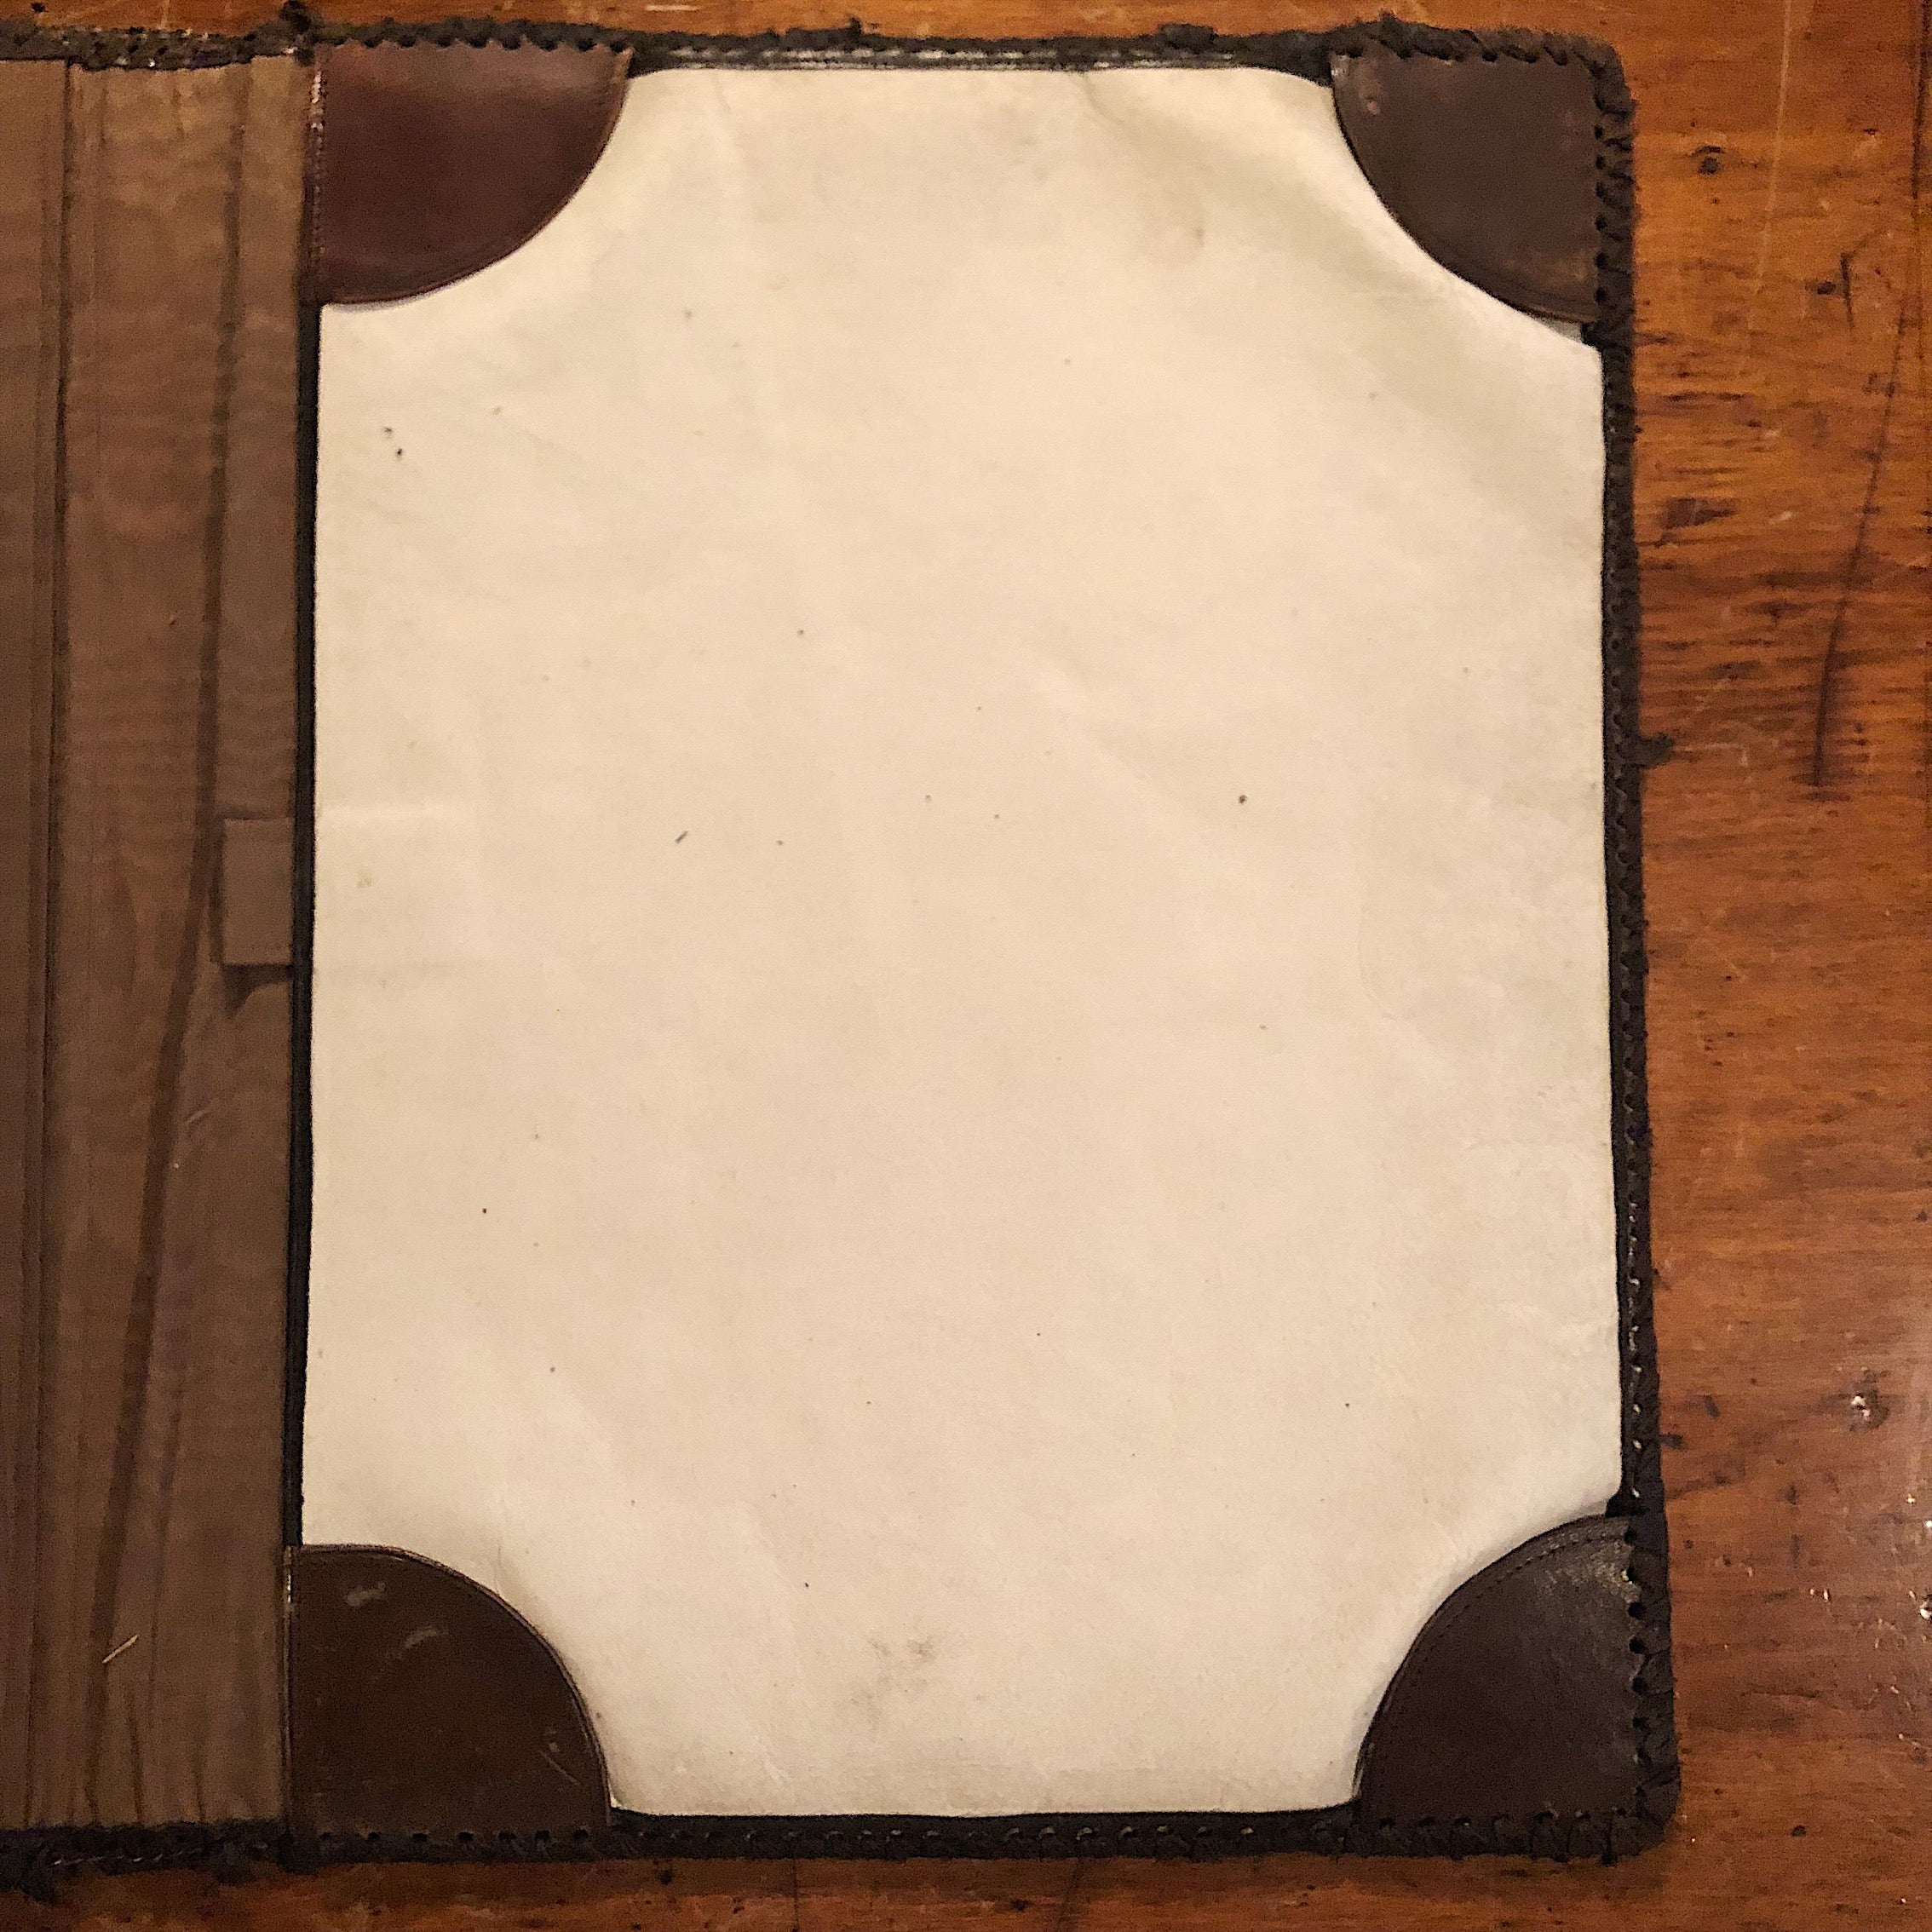 Antique Leather Portfolio Cover with Tooled Ornate Design